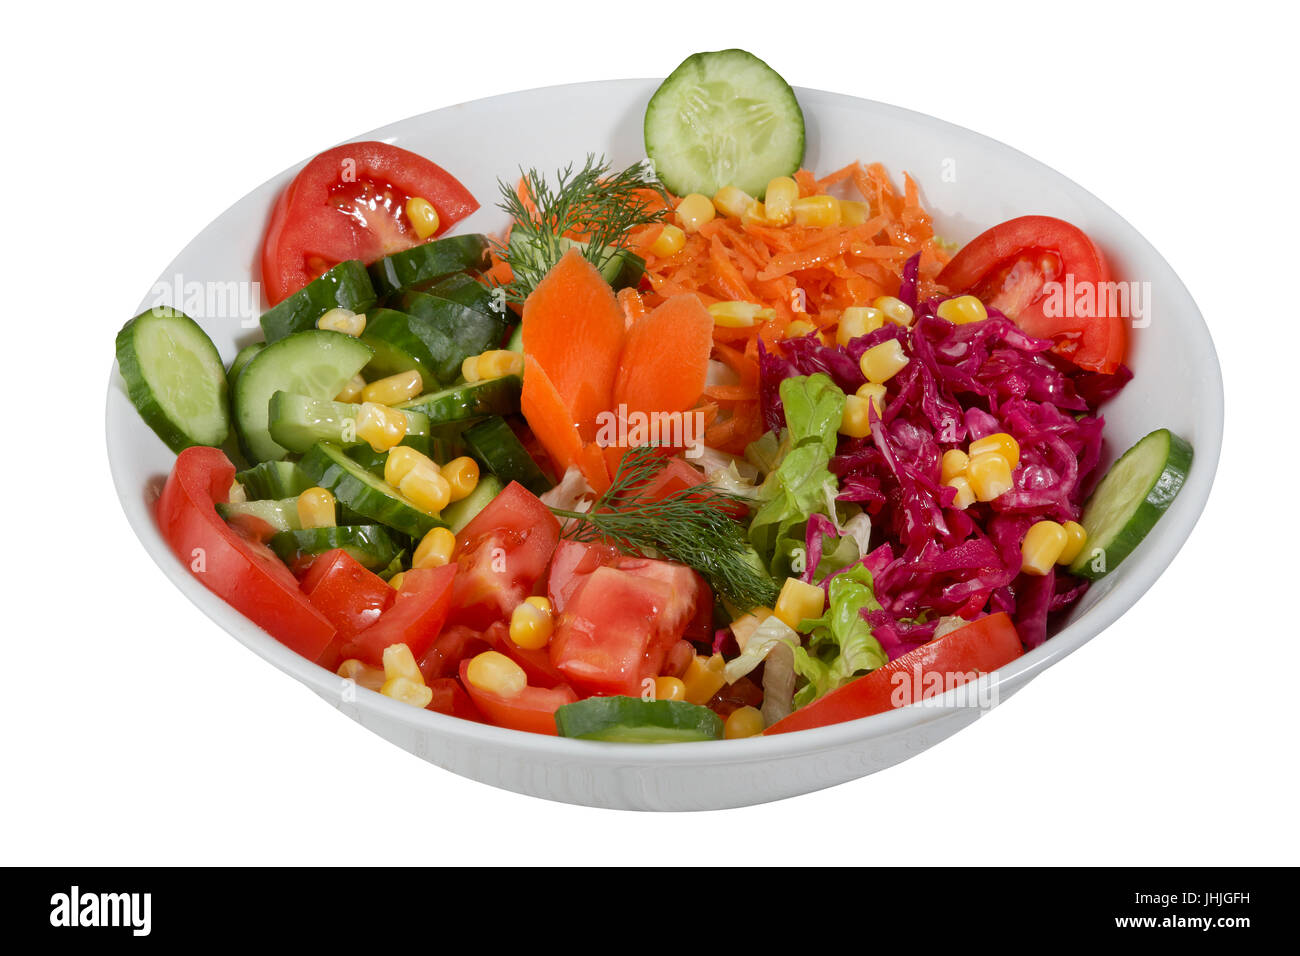 Fresh Vegetable Salad Isolated On A White Background Stock